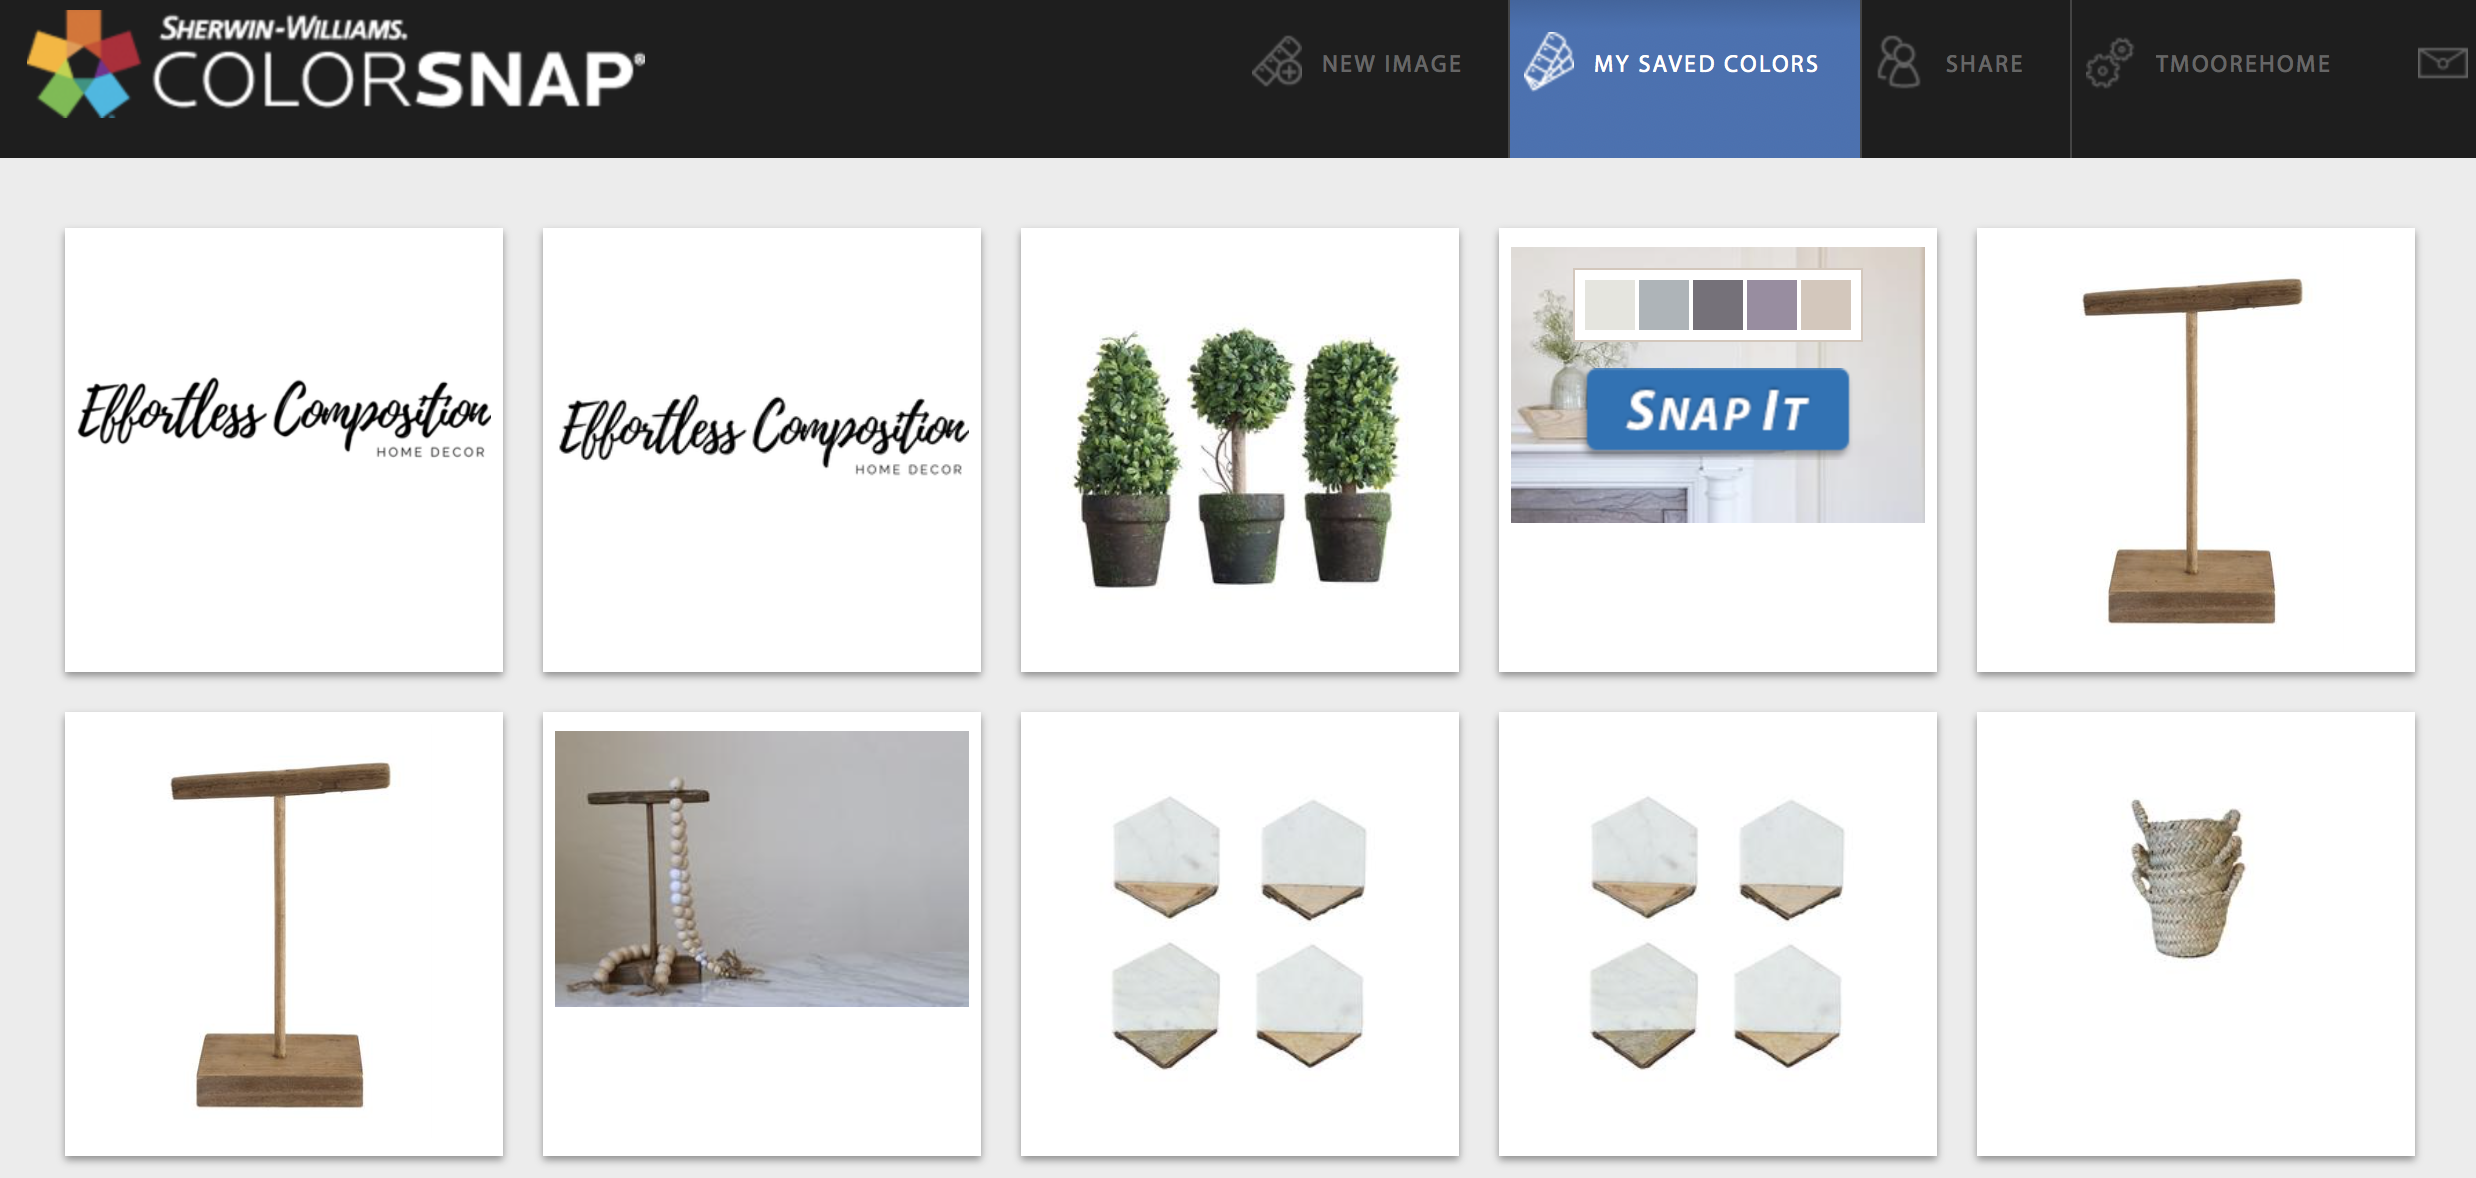 colorsnap by sherwin Williams.png